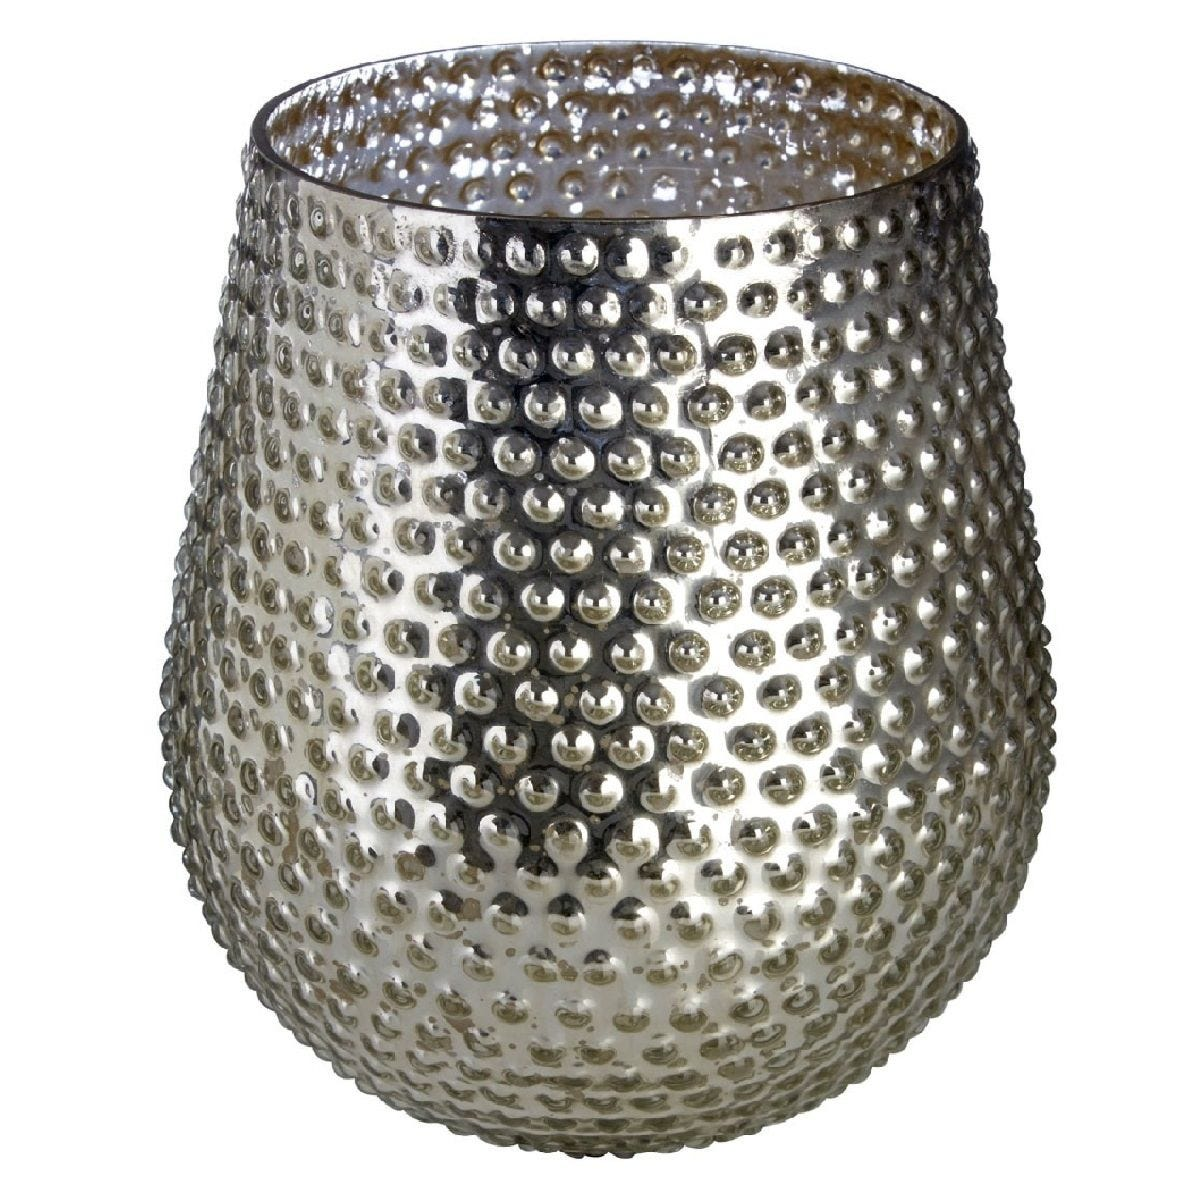 Premier Housewares Complements Large Glass Candle Holder - Silver Finish